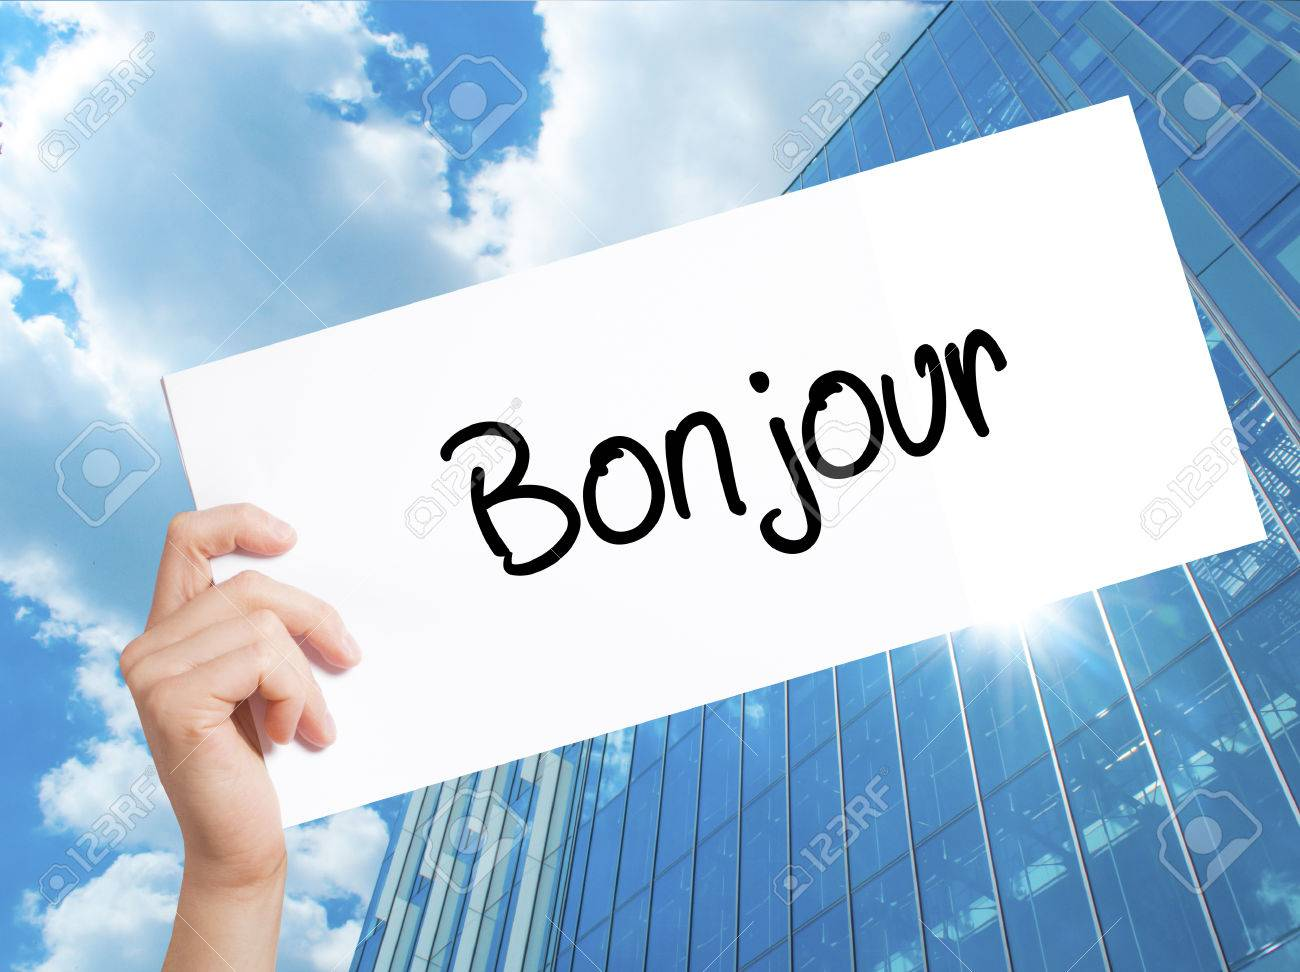 Bonjour Good Morning In French Sign On White Paper Man Hand